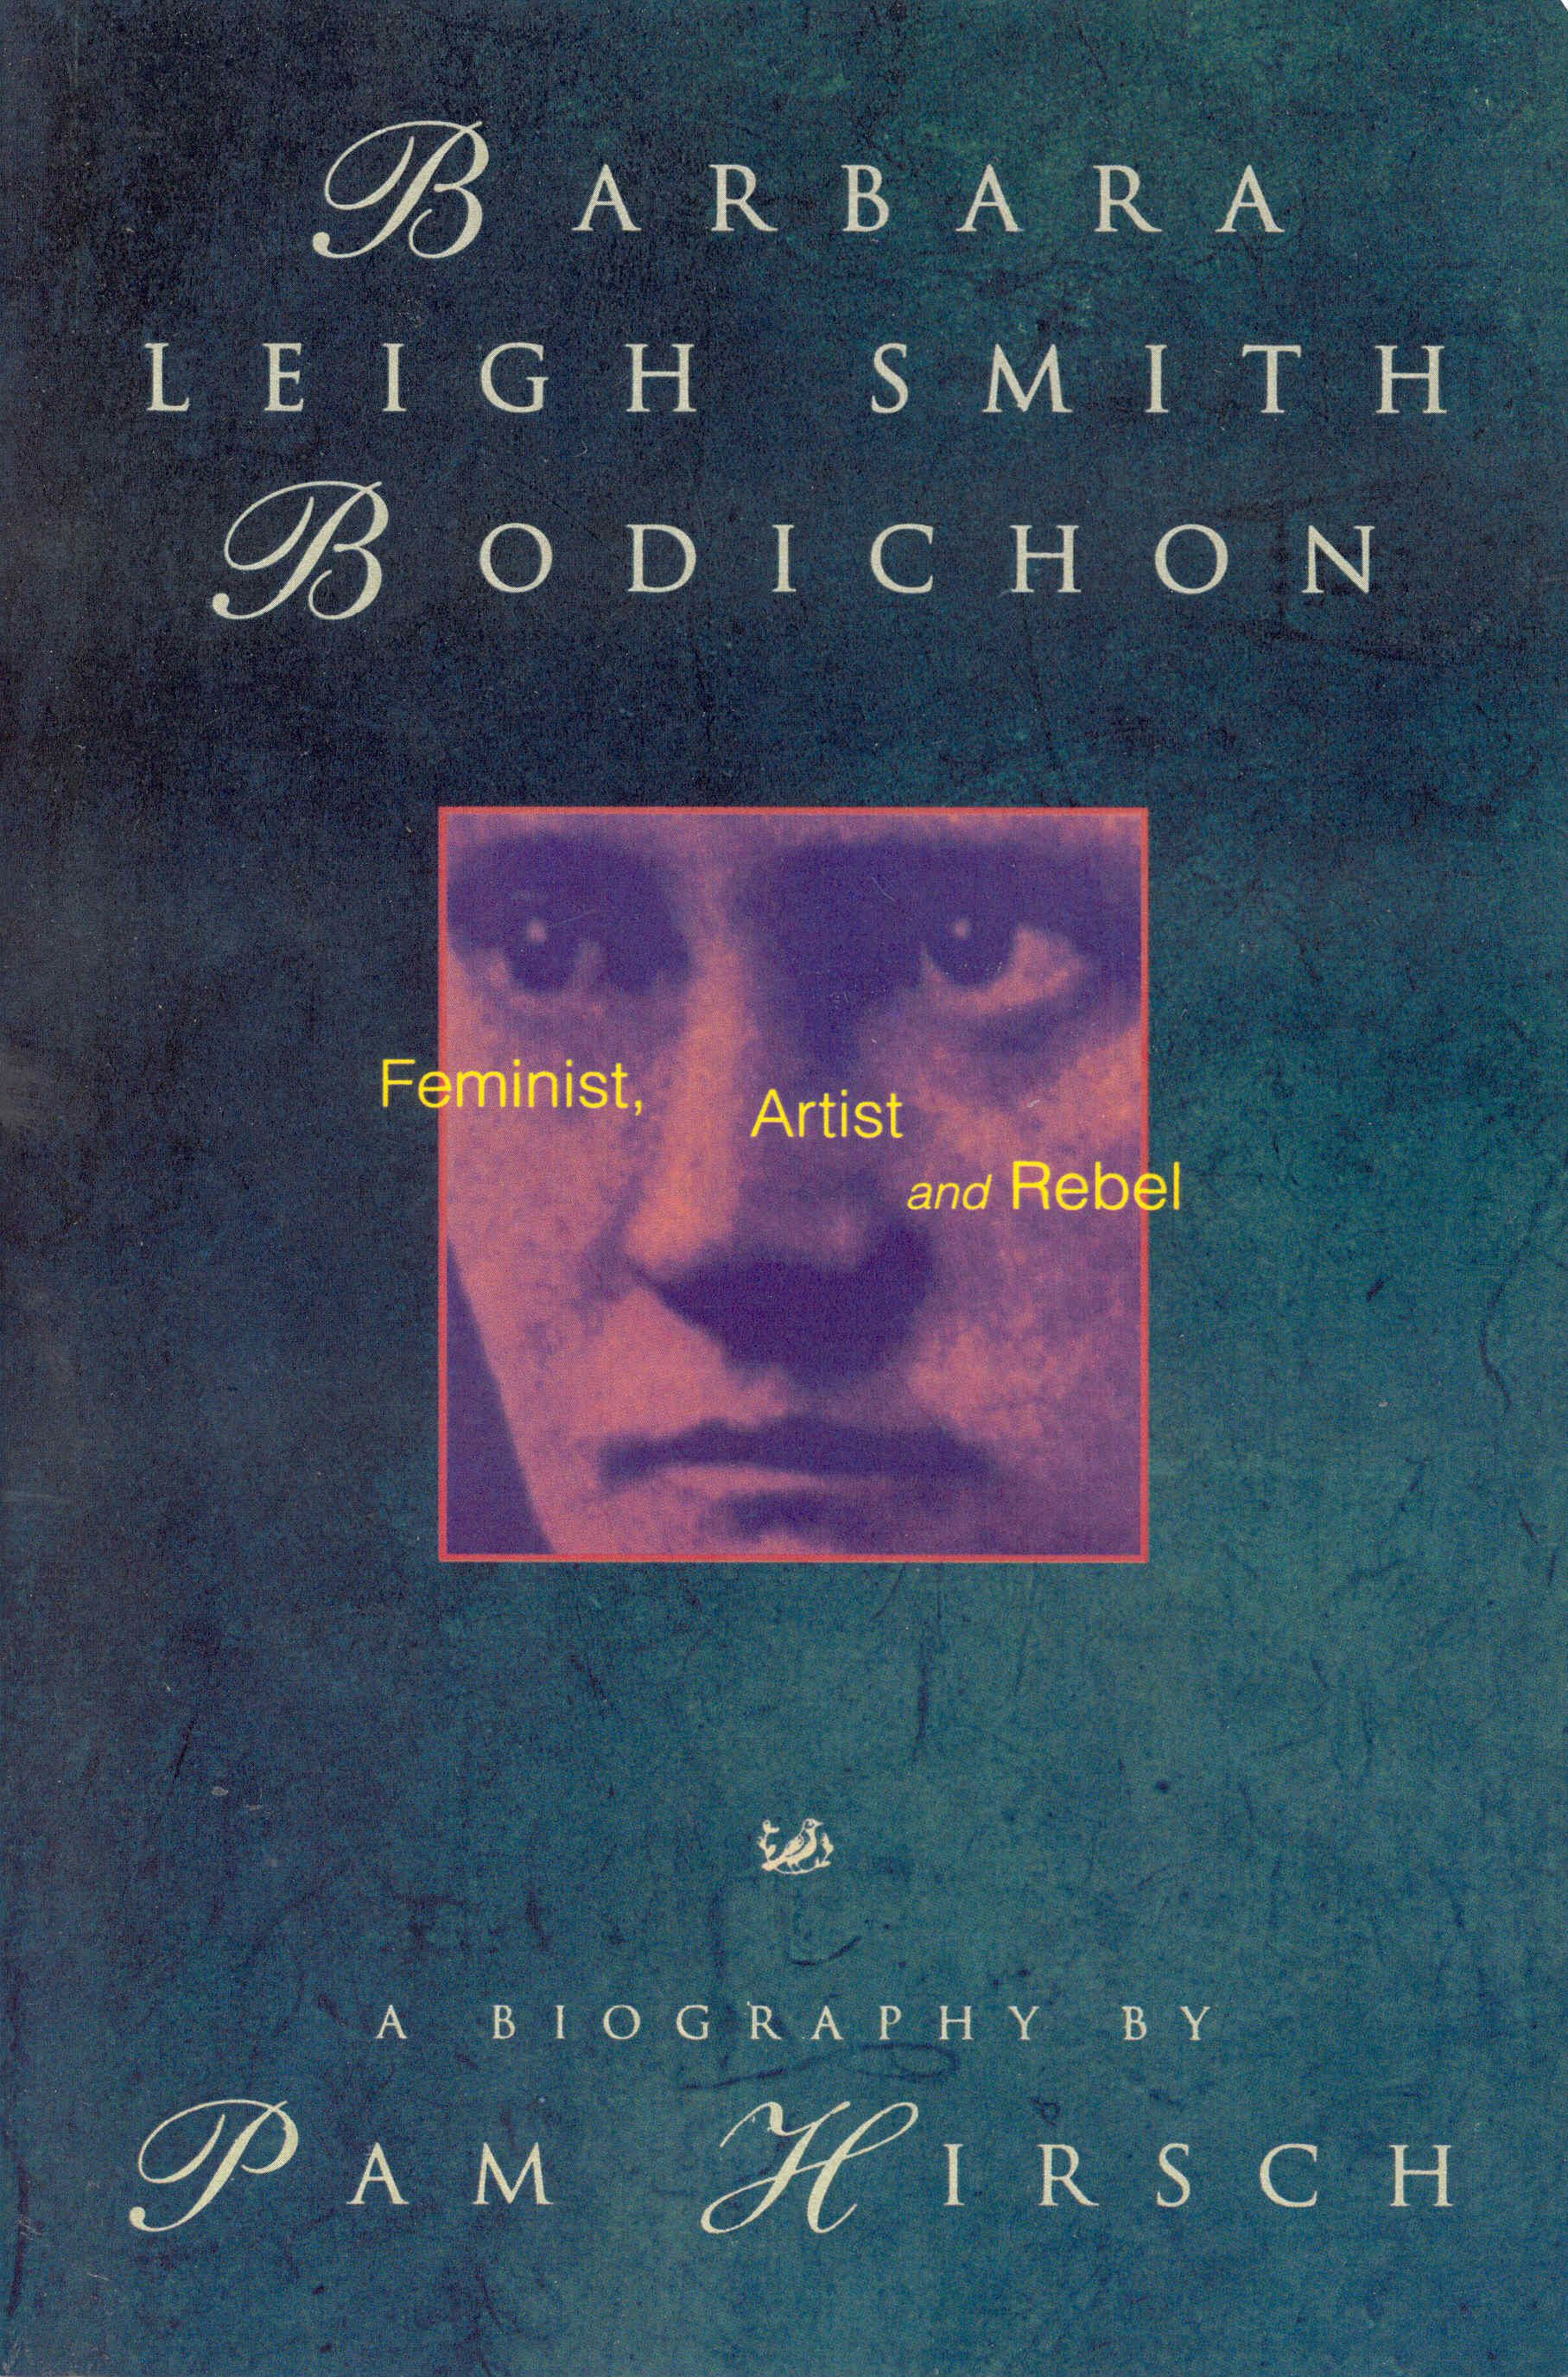 Barbara Leigh Smith Bodichon Feminist, Artist and Rebel